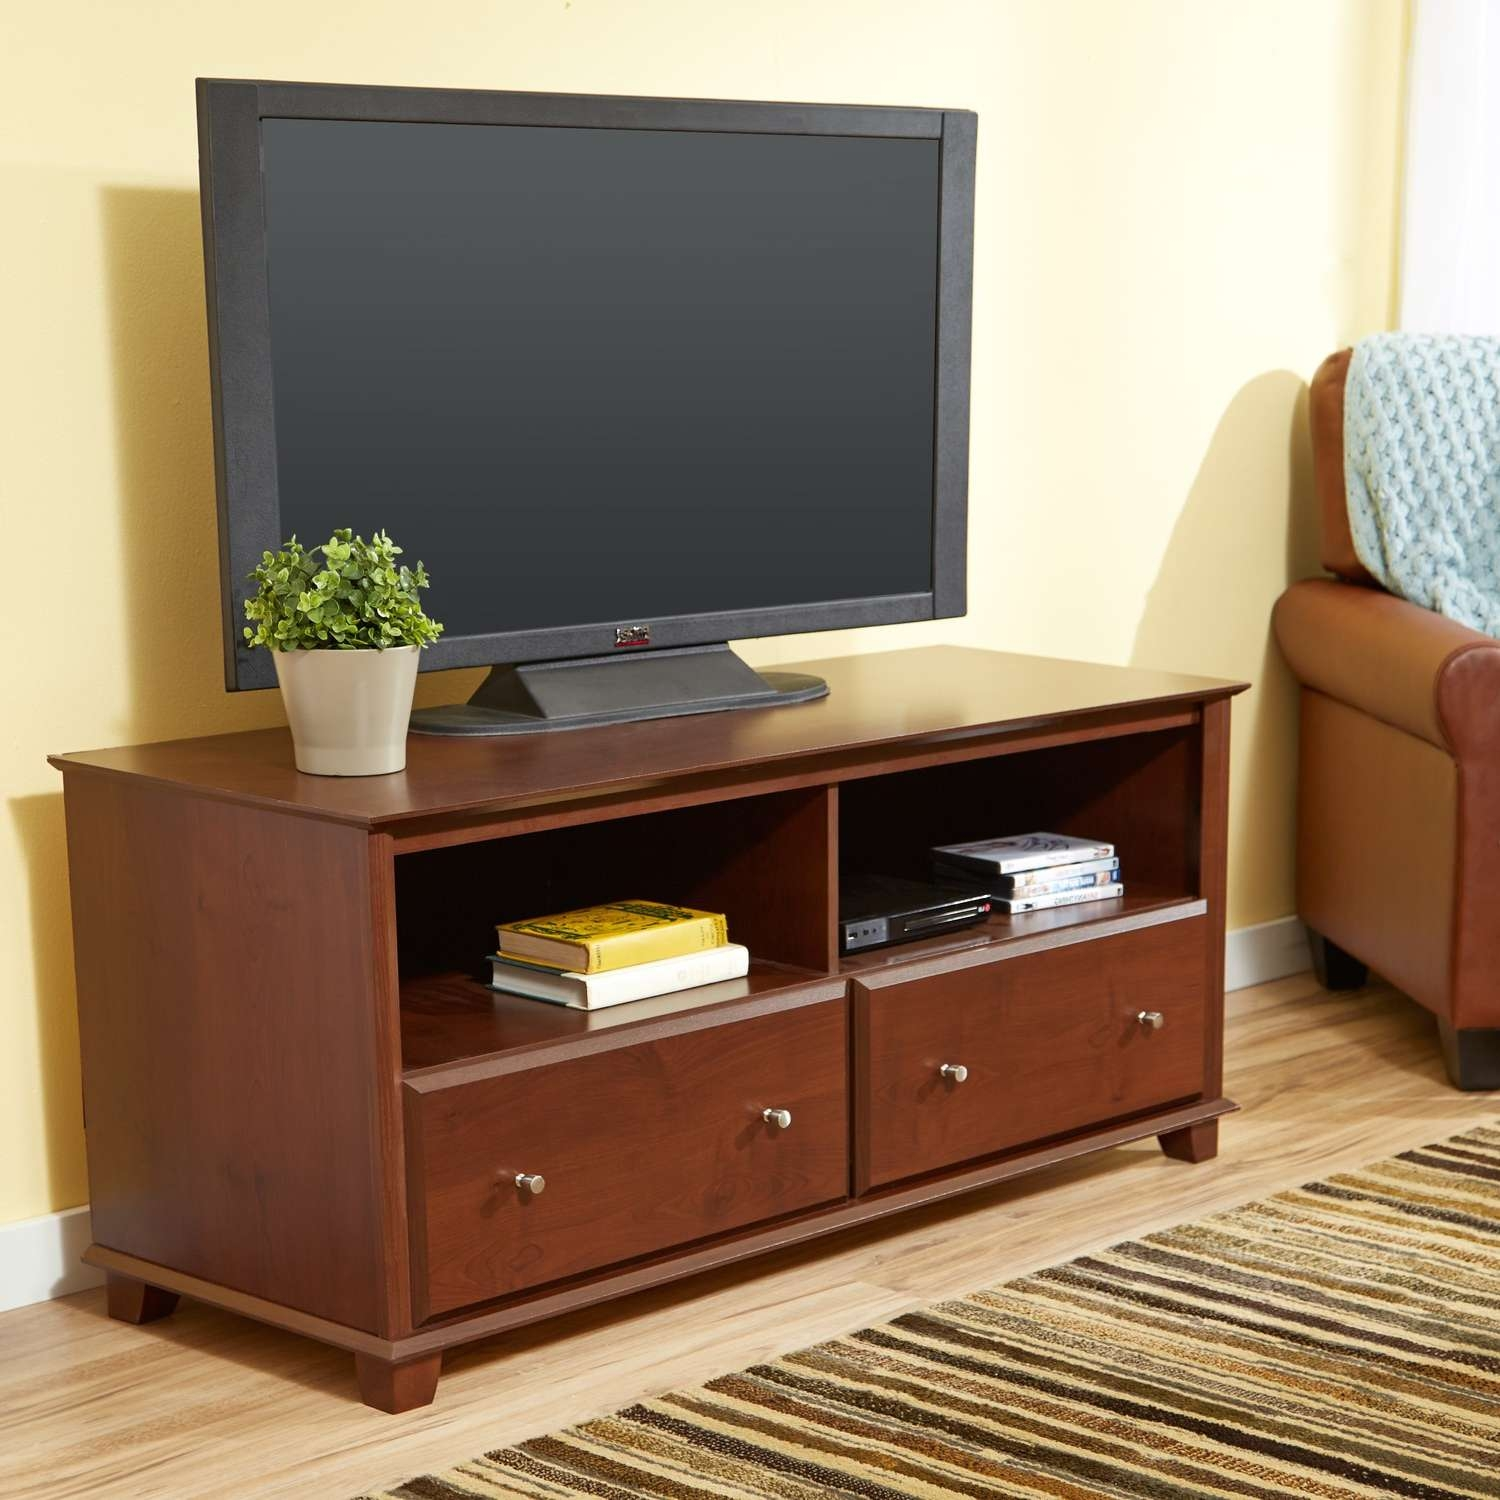 Furniture: Winsome Vivacious Mesmerizing Brown Cabinet Apothecary Intended For Light Brown Tv Stands (View 3 of 20)